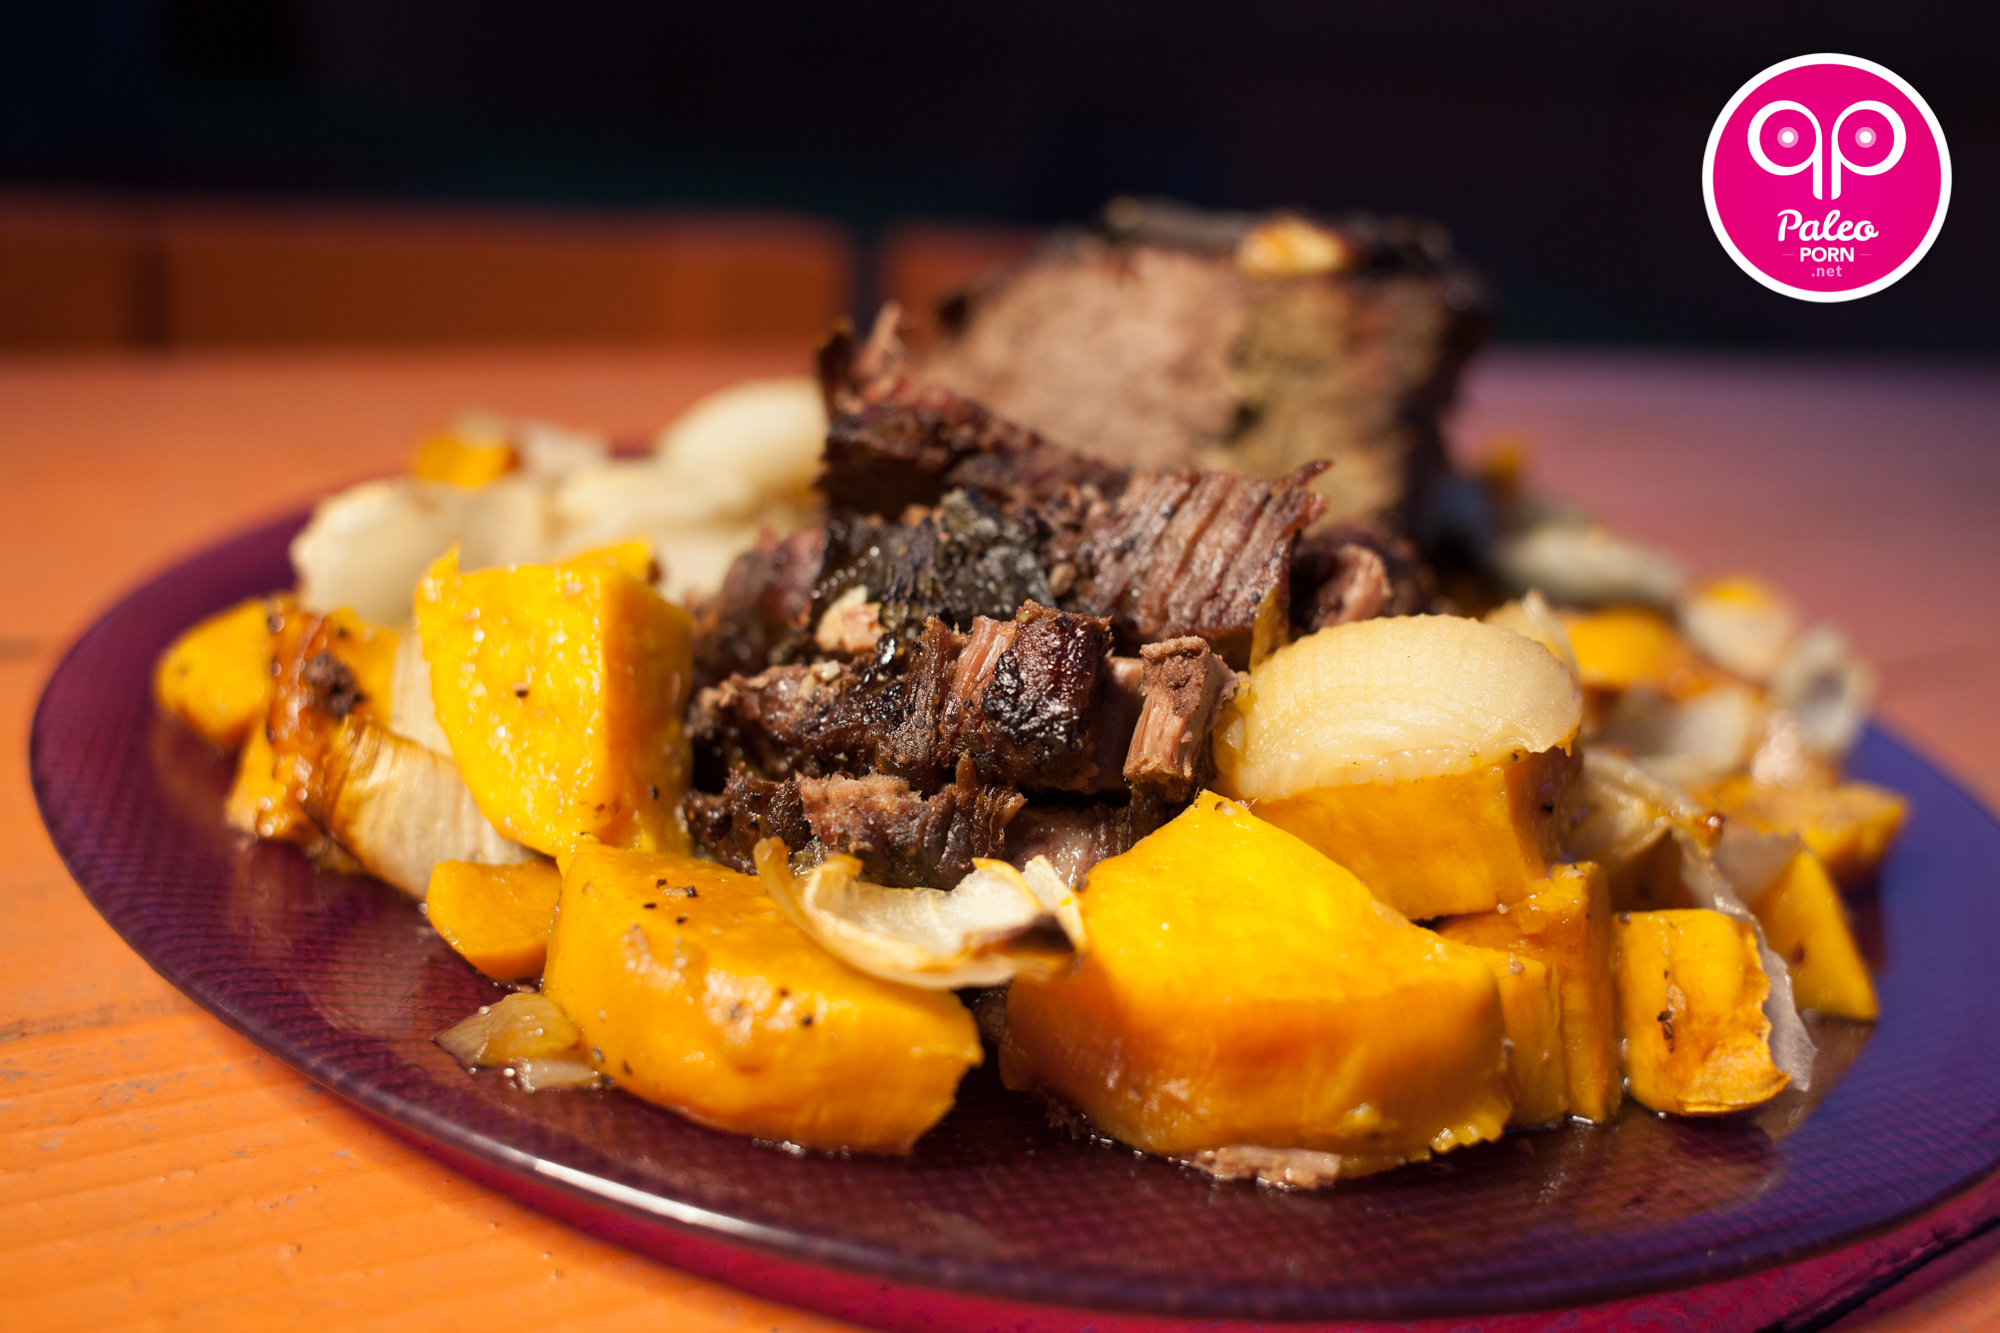 Paleo Bottom Round Roast